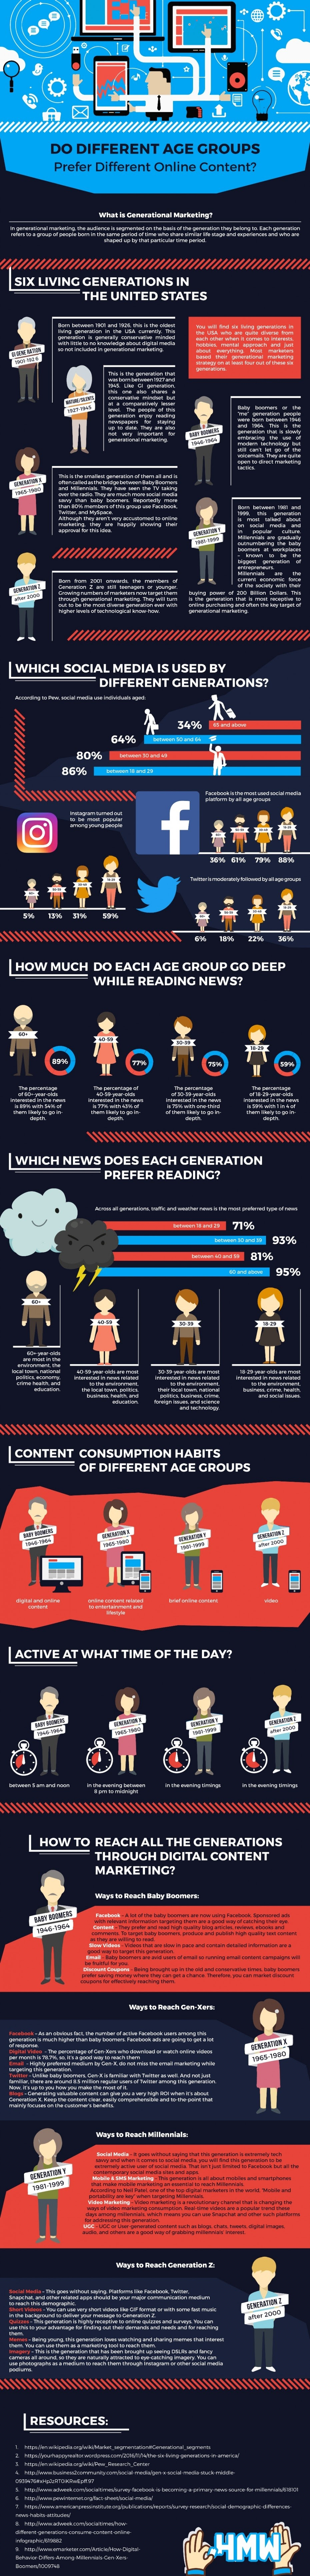 Do Different Age Groups Prefer Different Online Content? - #infographic